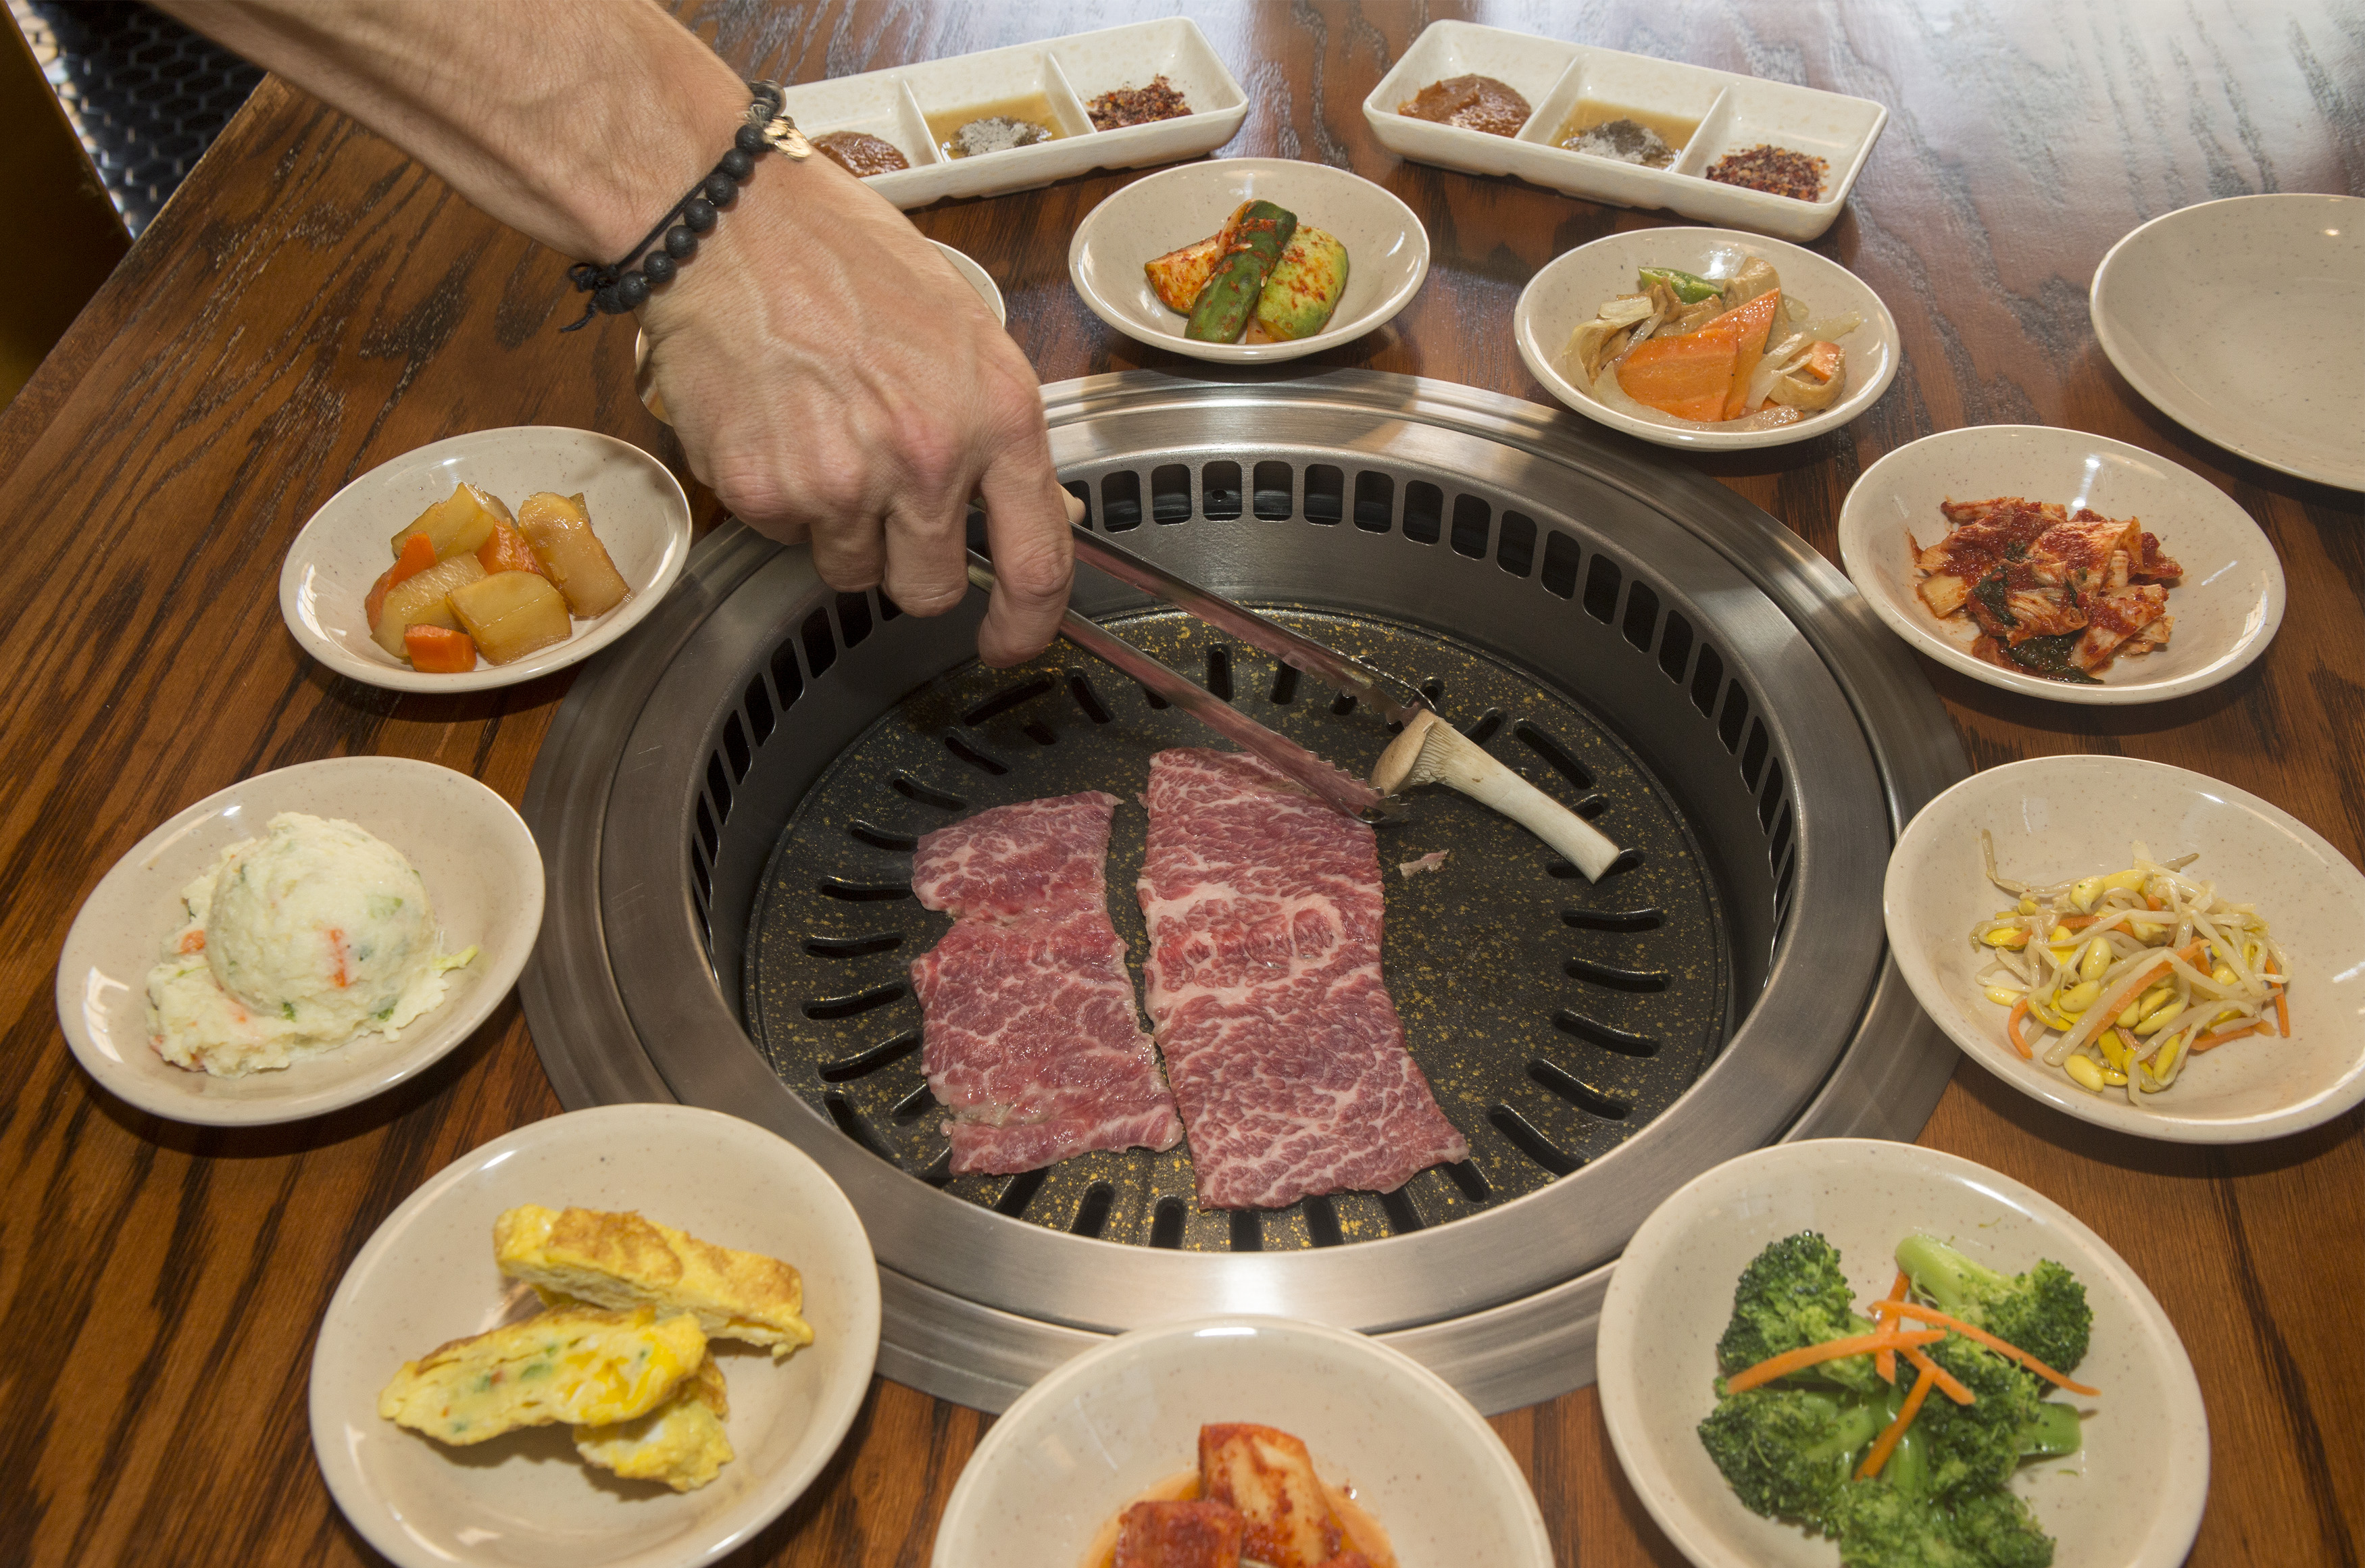 A person grilling meat on a tabletop grill that's surrounded by banchan.